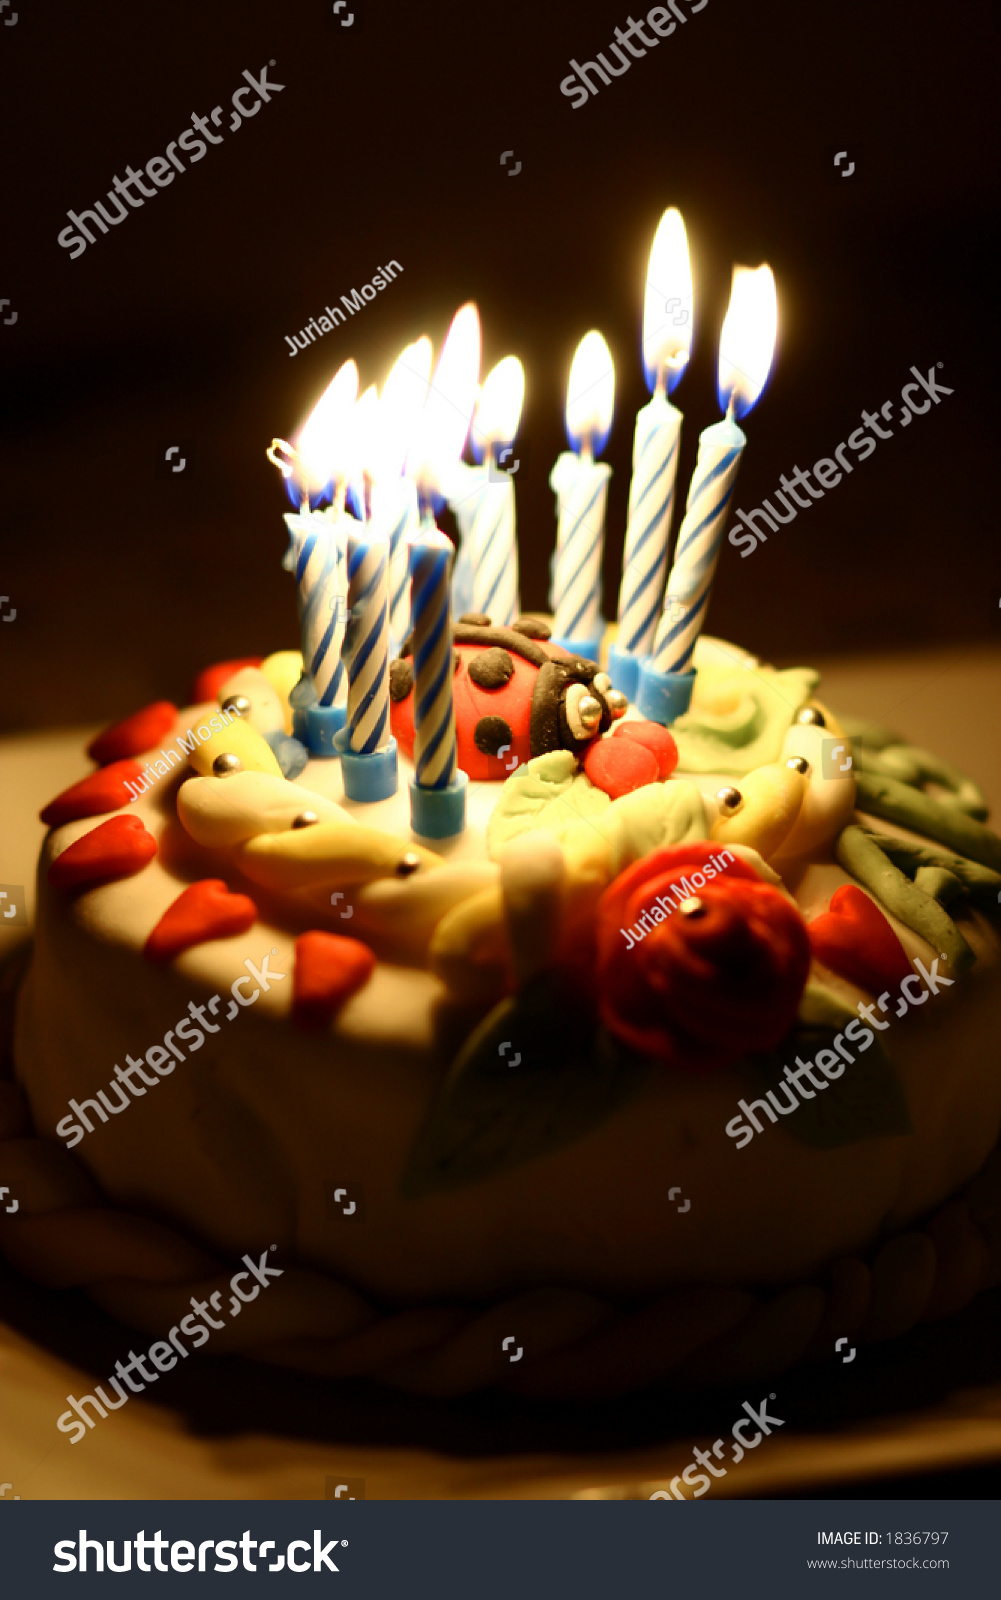 Close Up Of A Birthday Cake All Lit In The Dark